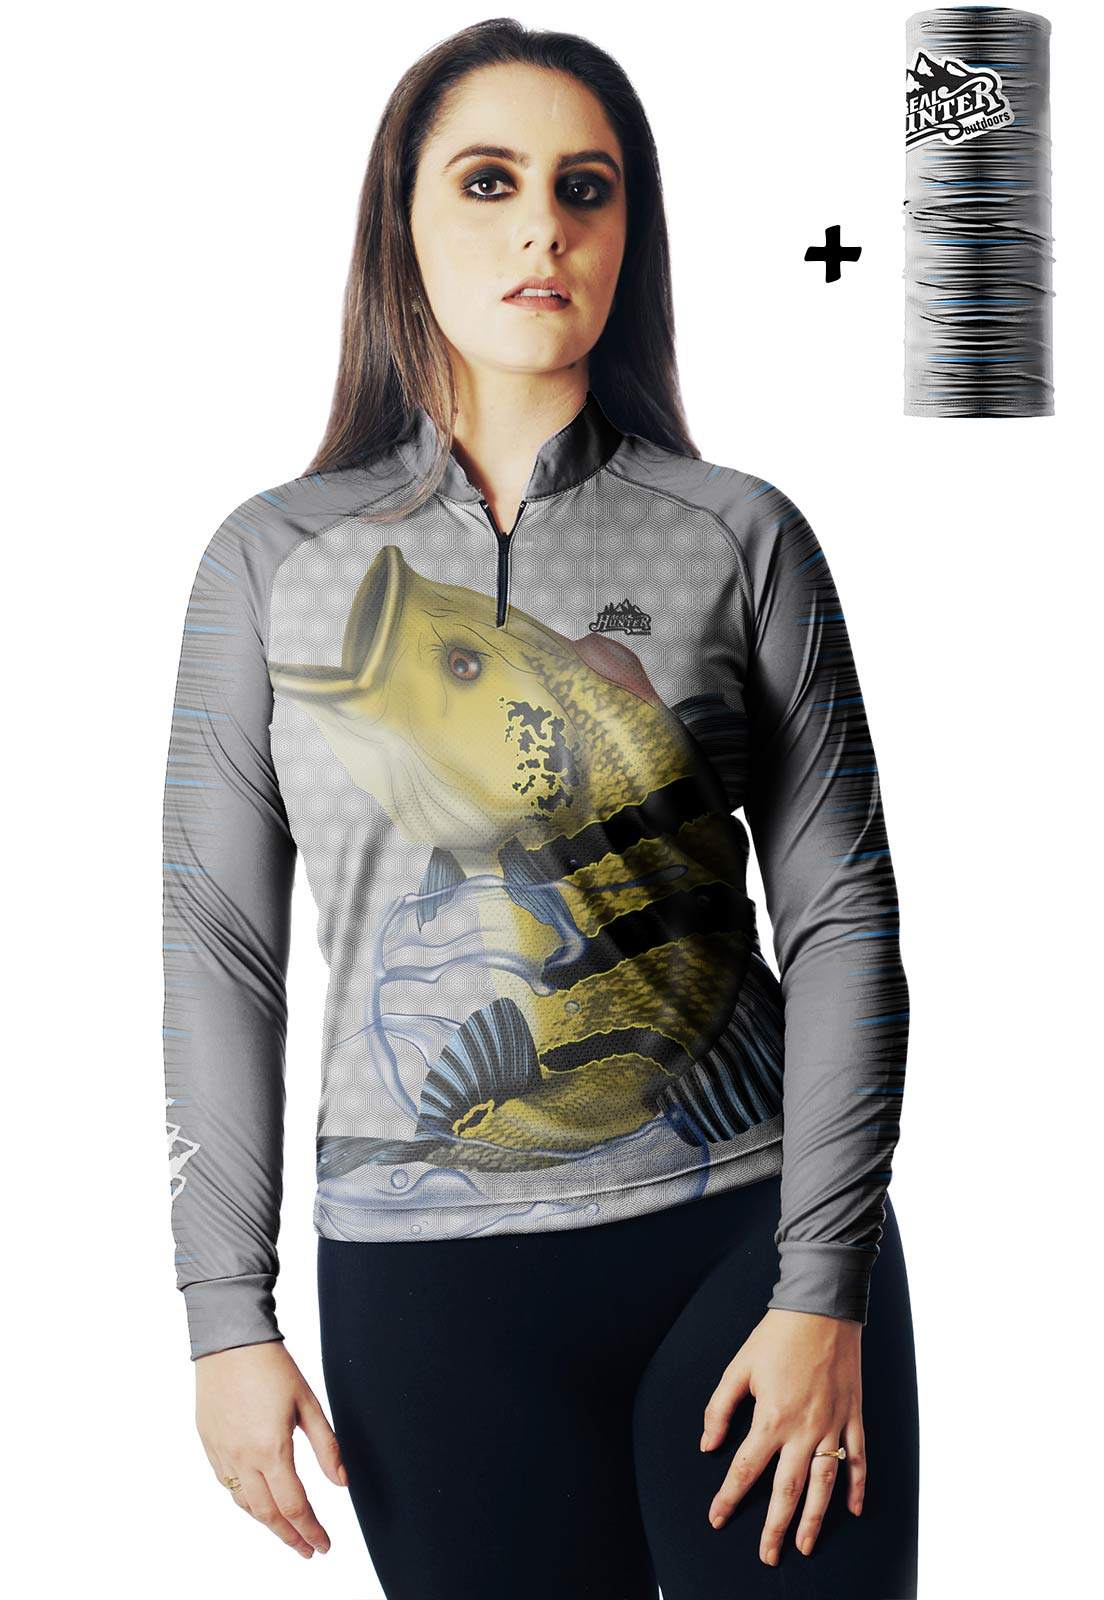 CAMISA DE PESCA FISH TUCUNARÉ 05 FEMININA + BANDANA GRÁTIS  - REAL HUNTER OUTDOORS